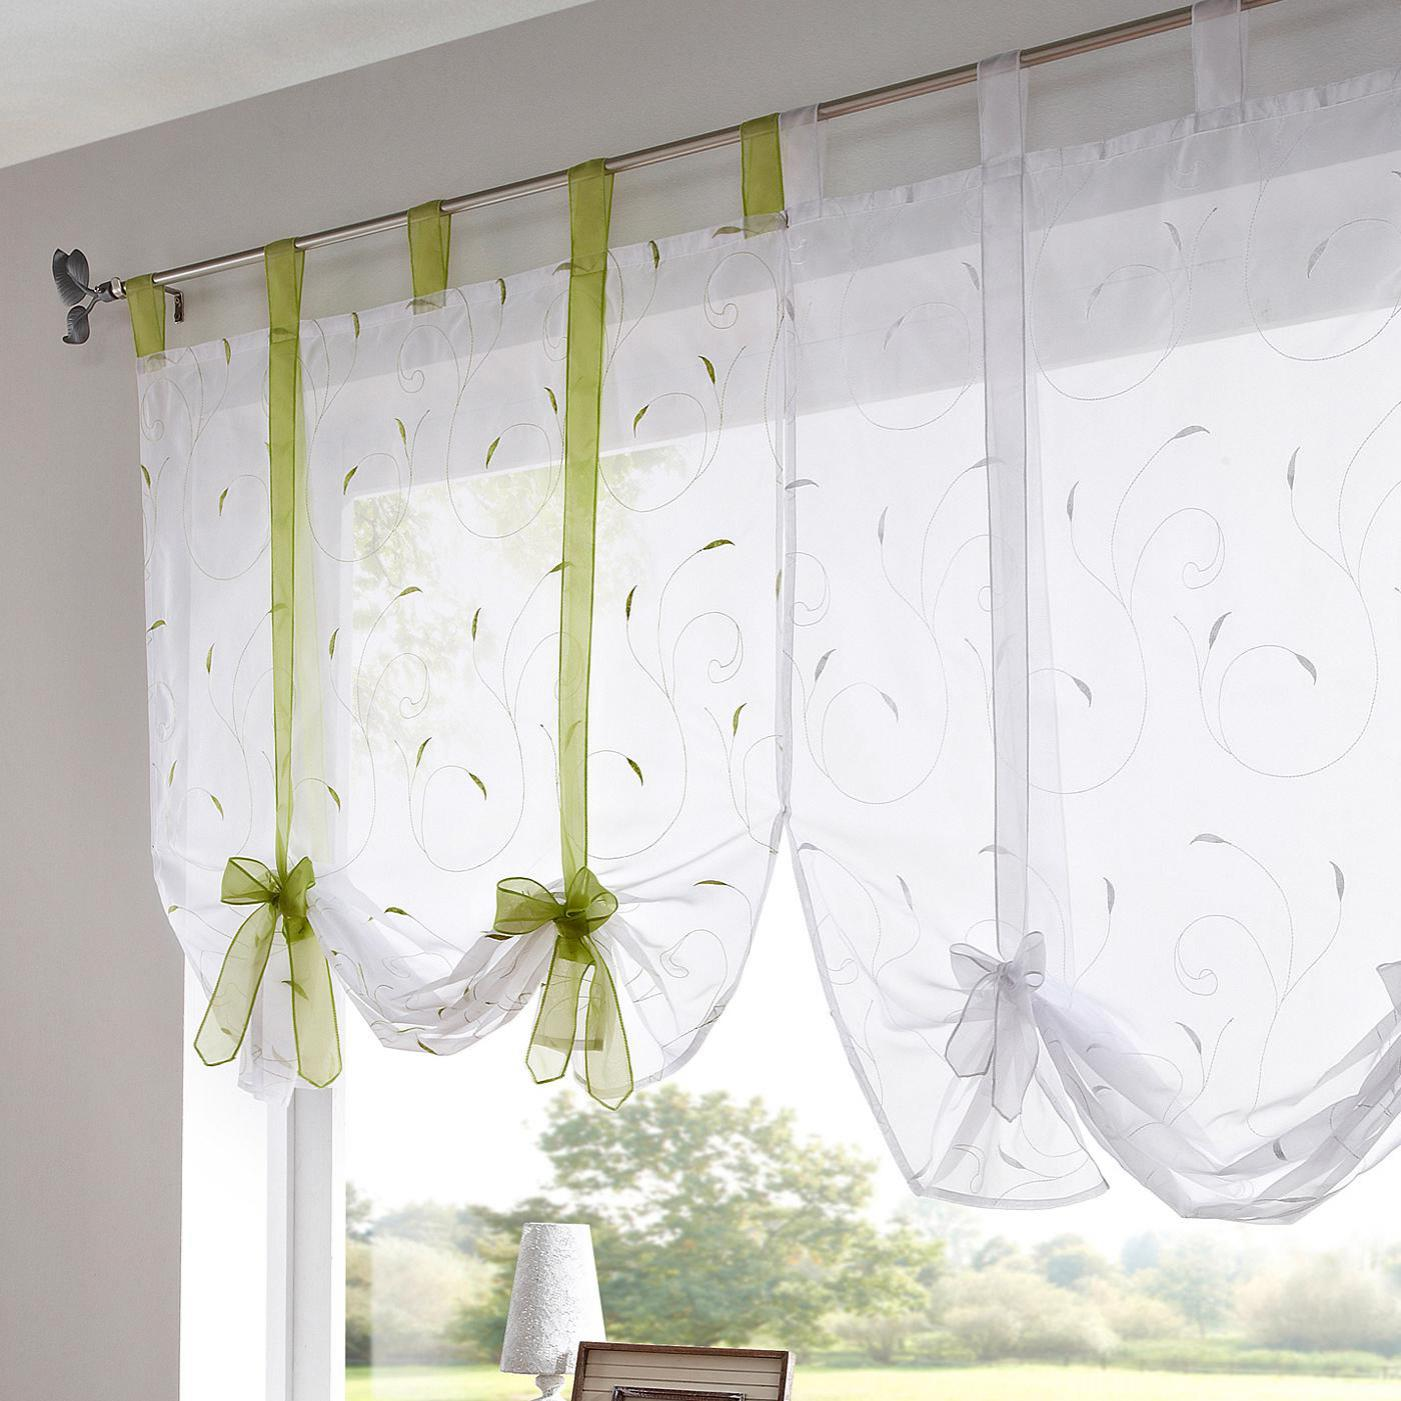 valance curtains gold kitchen grommet shop tiers cafe gray valances sheer decoration curtain window yellow tiered and